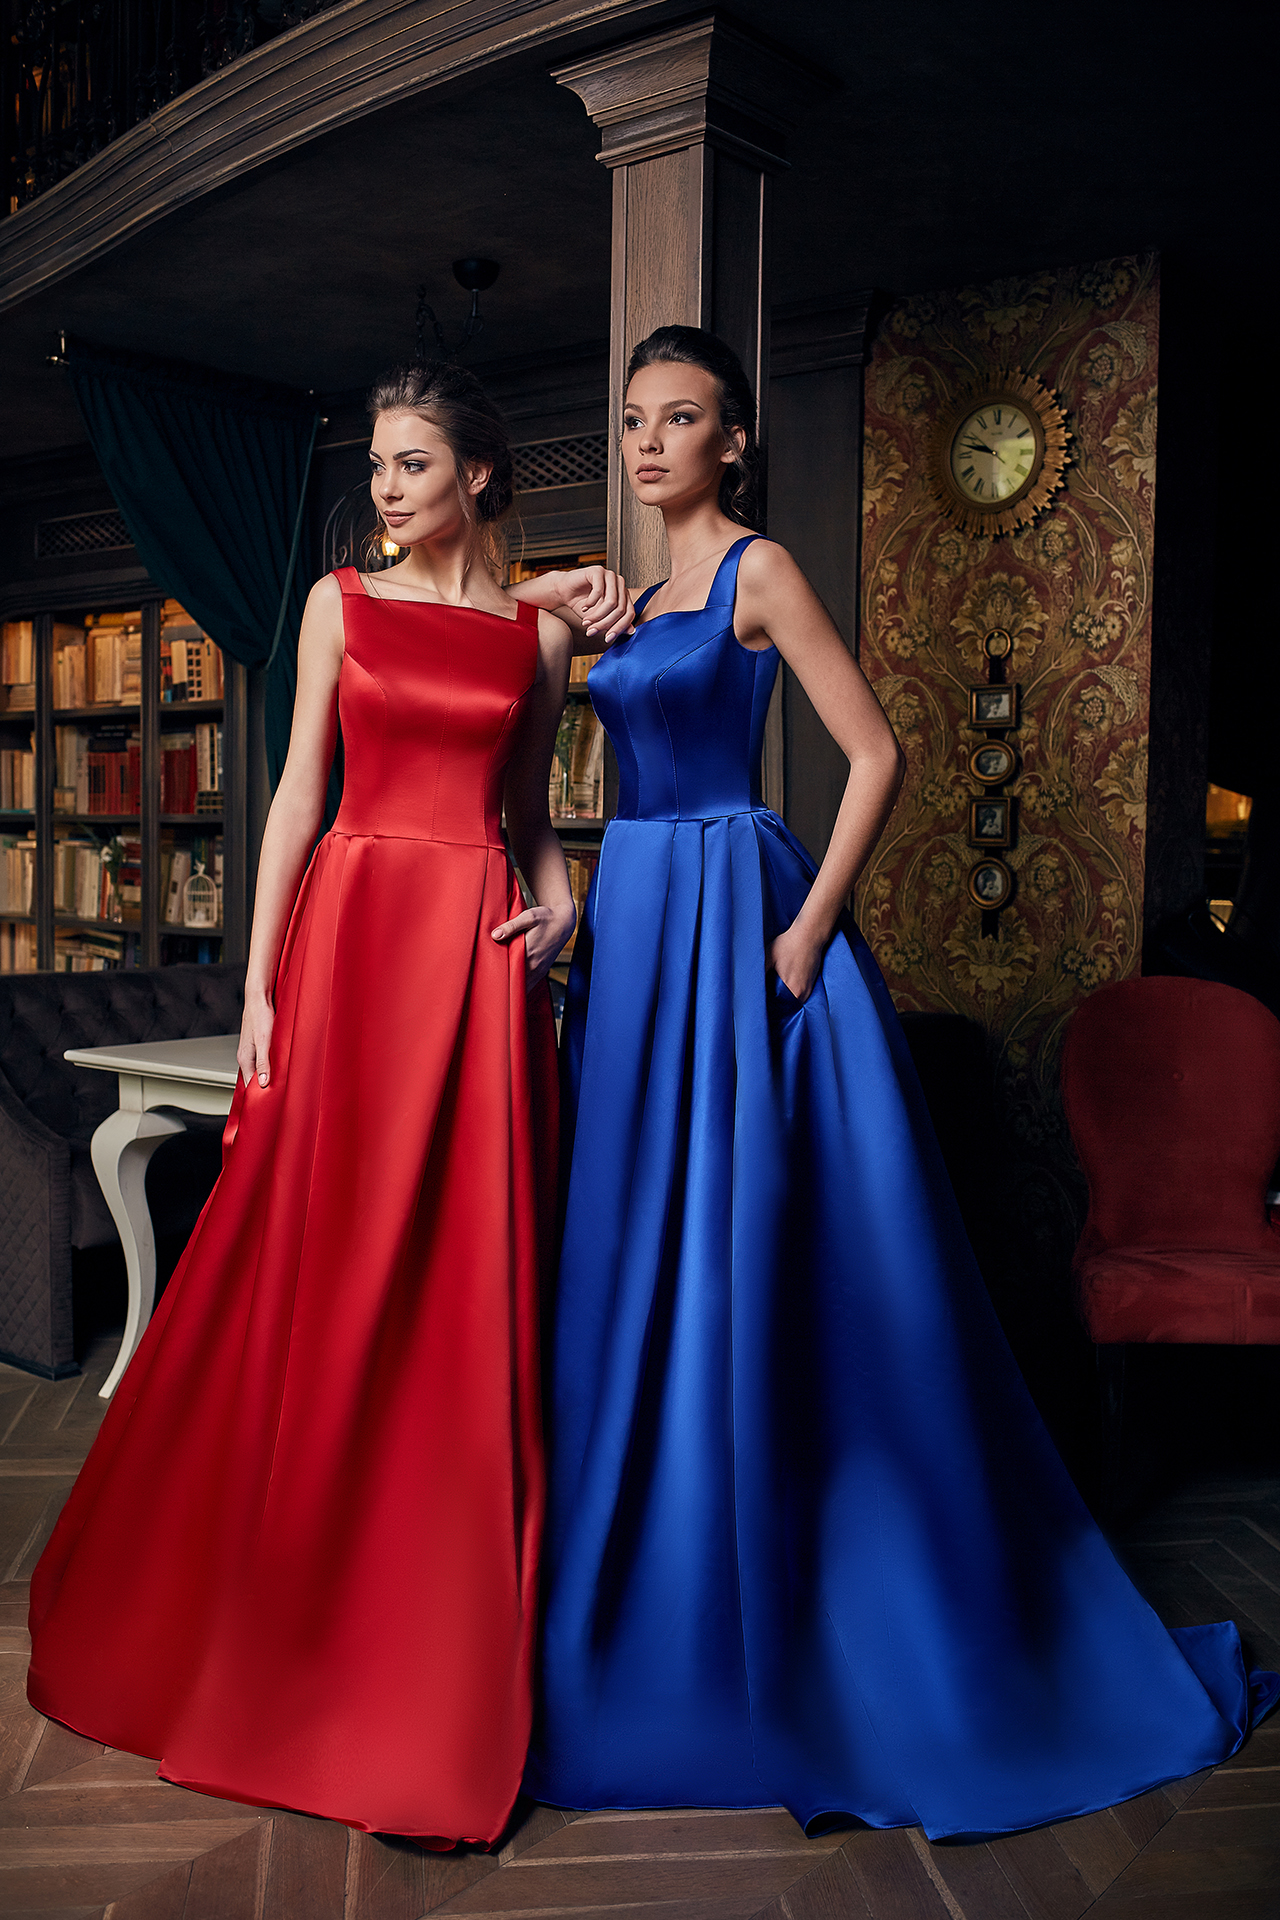 Evening Dresses 1231 Silhouette  A Line  Color  Blue  Red  Neckline  Straight  Sleeves  Wide straps  Train  With train